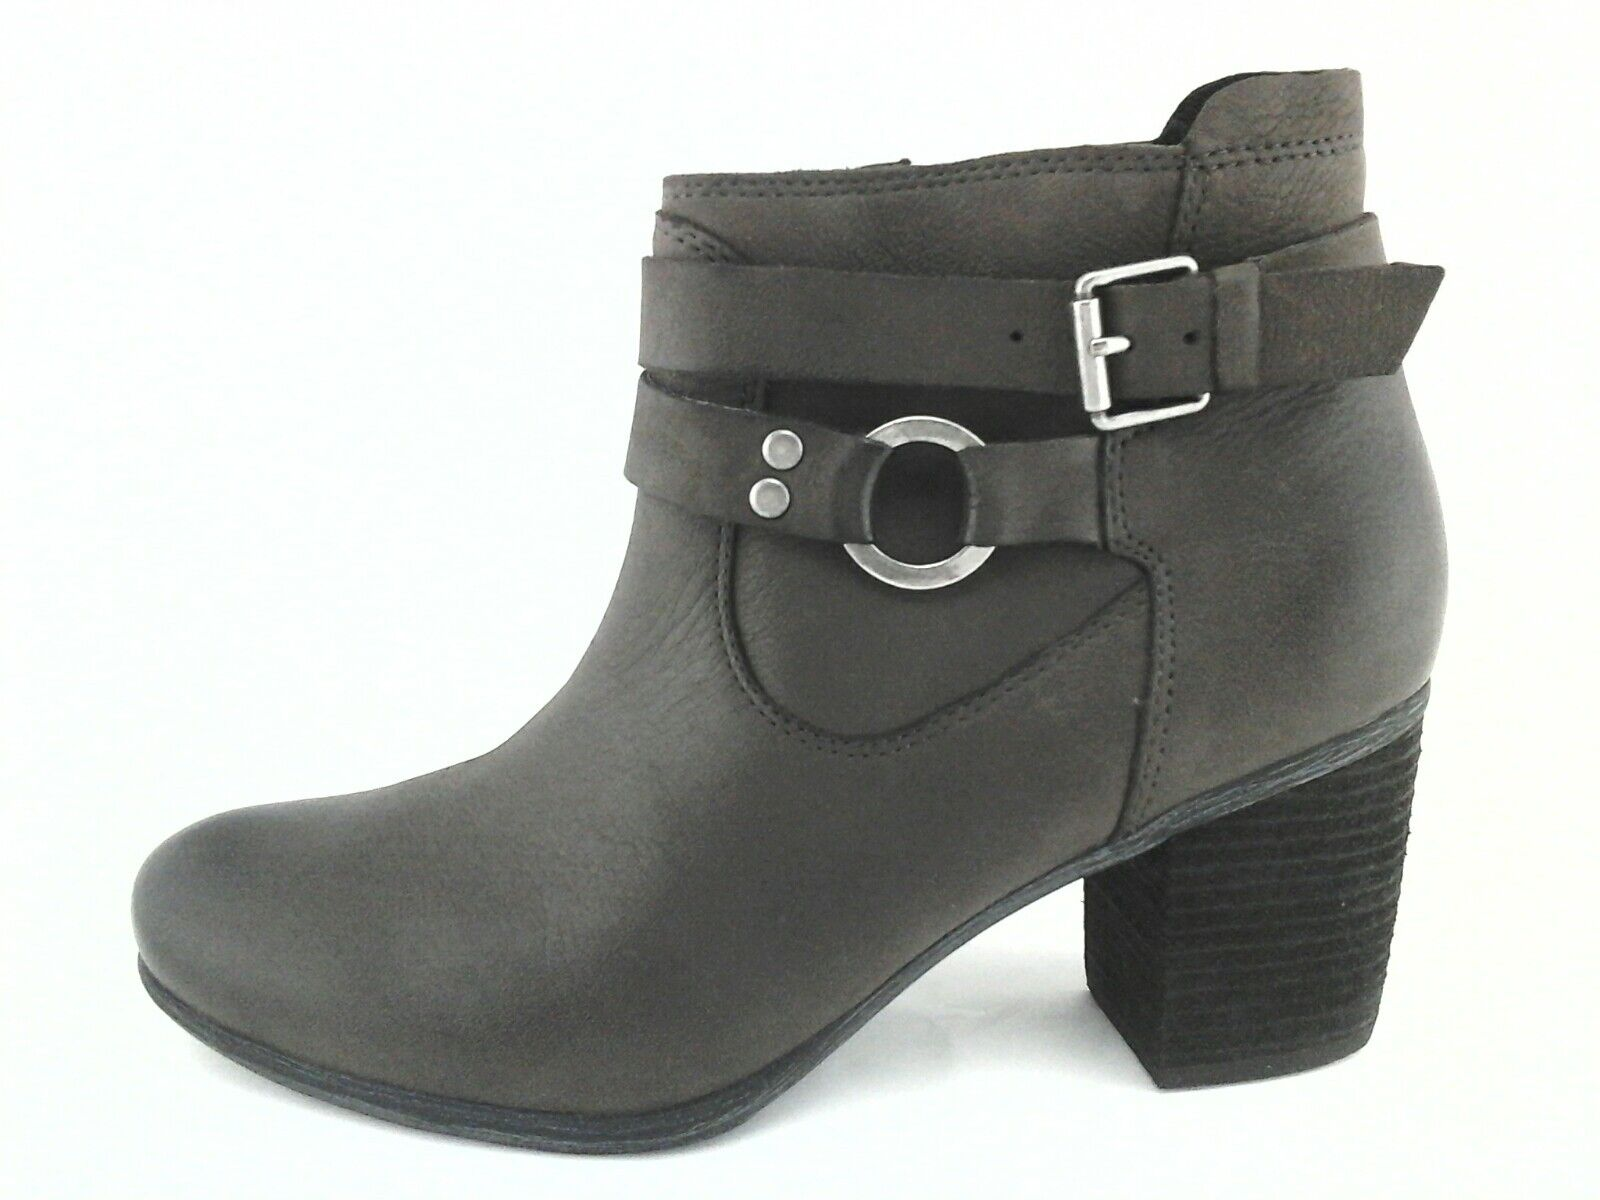 JOSEF SEIBEL Ankle Boots Brown BRITNEY Leather Bootie Womens US 7-7.5 EU 38  175